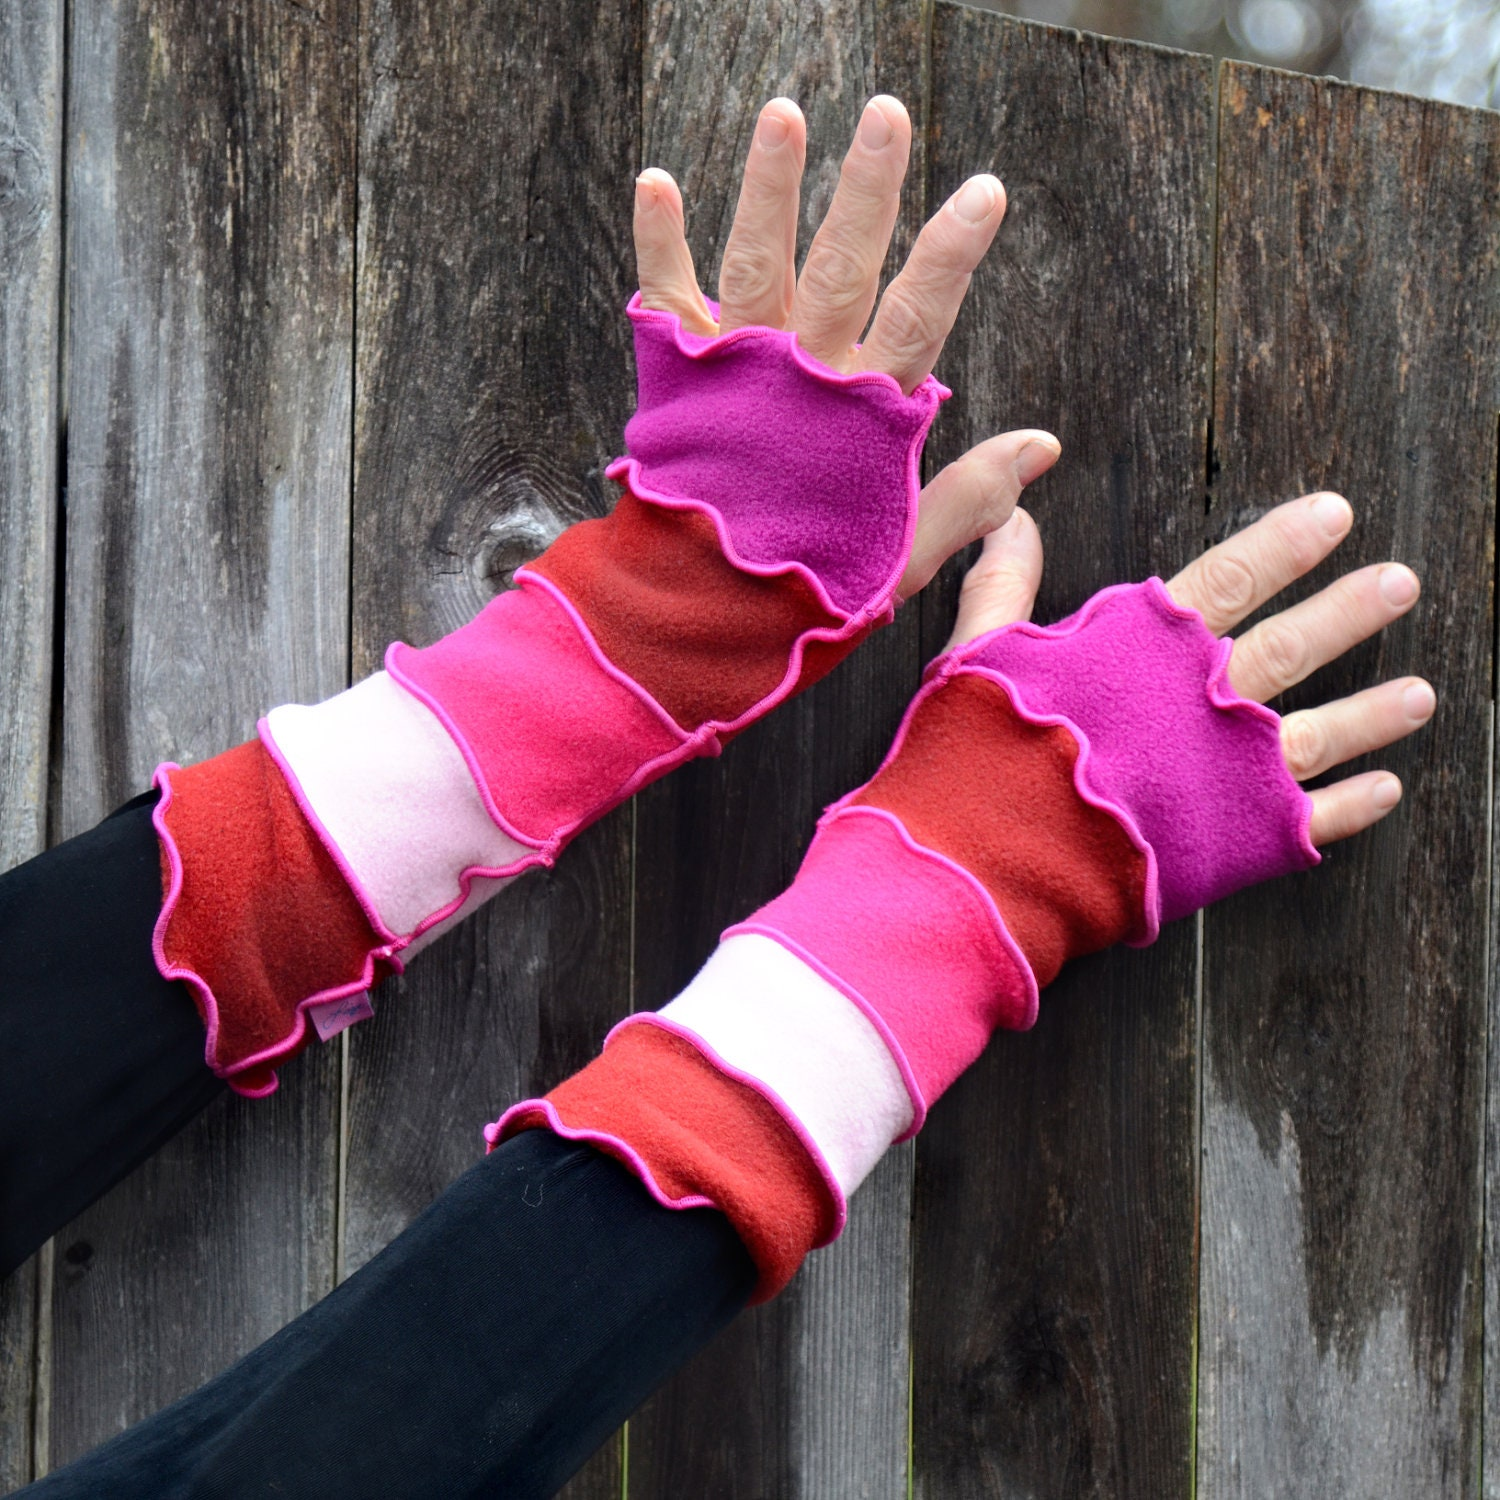 Hot Pink Arm Warmers - LizaJaneNorman